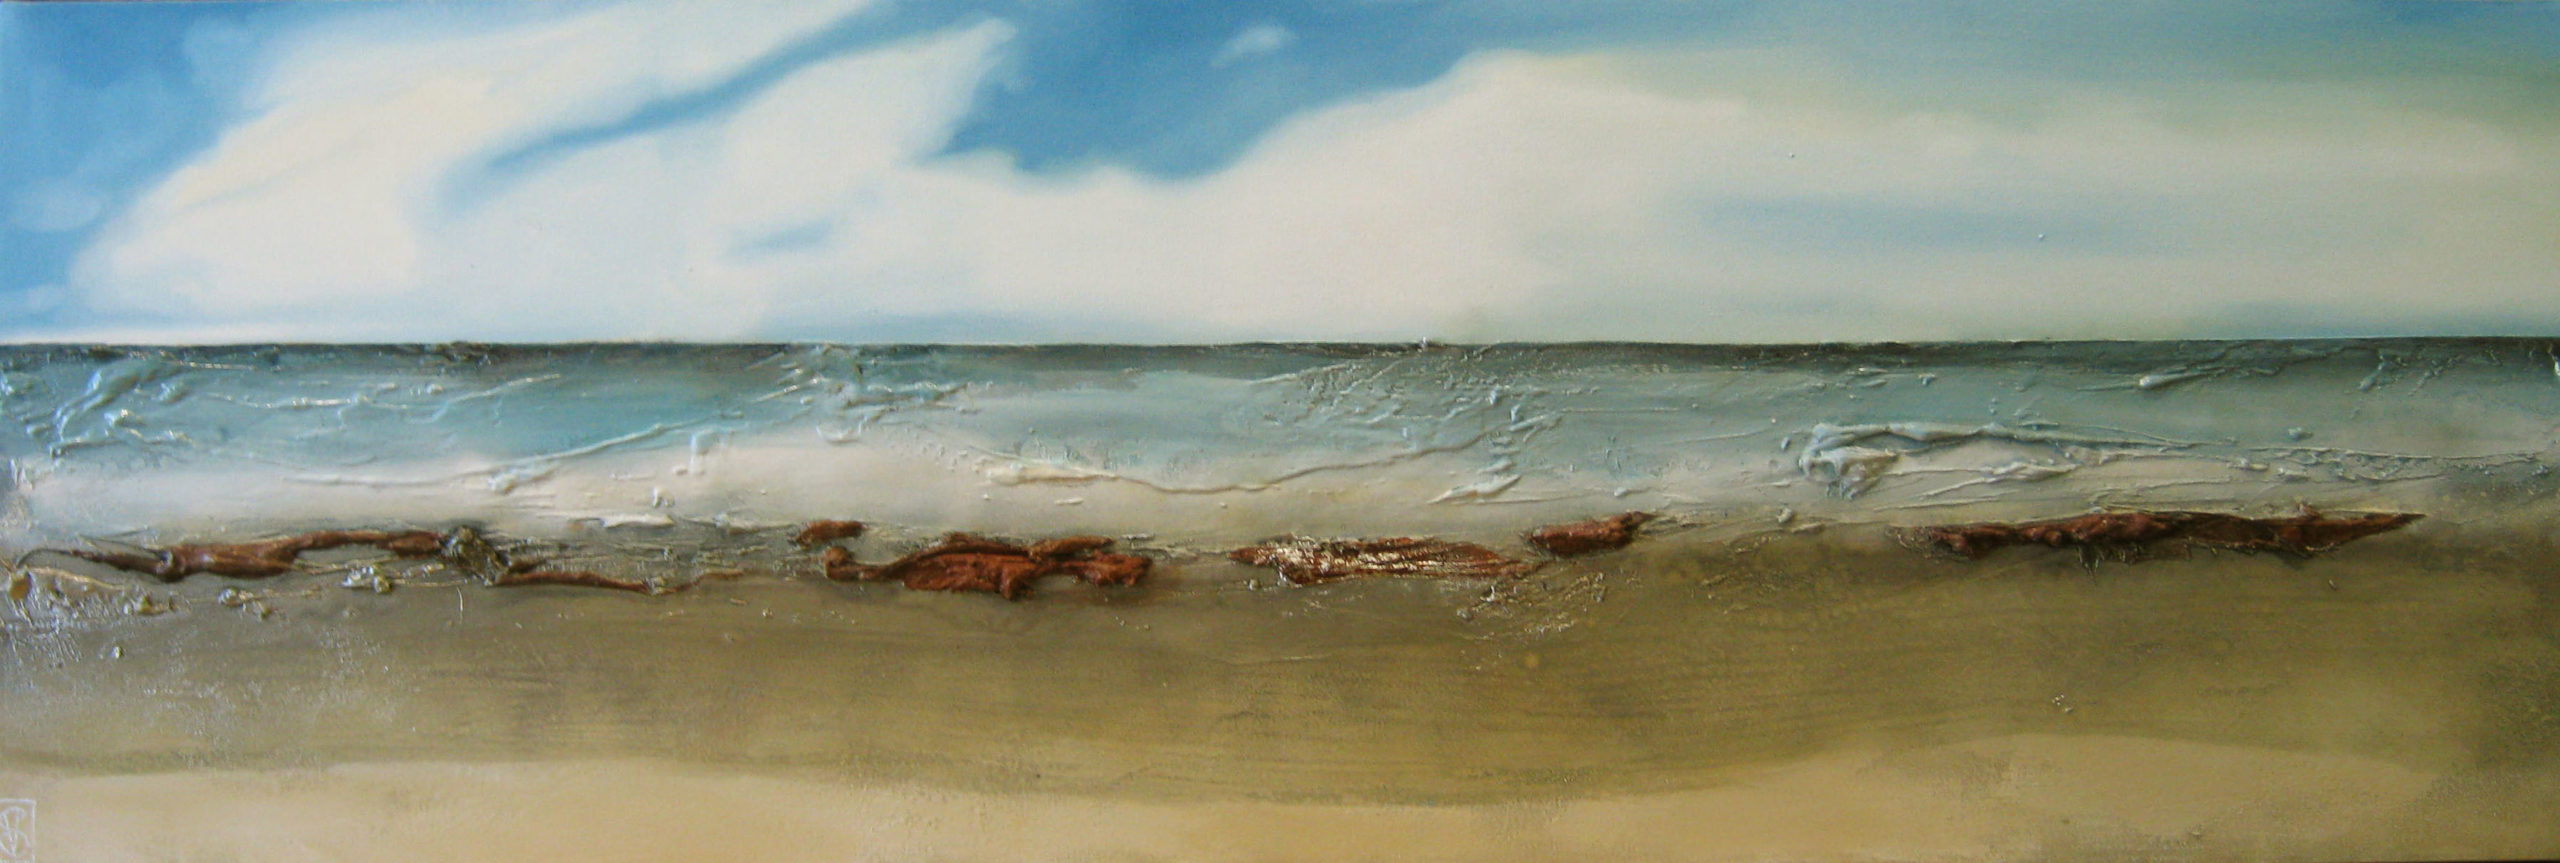 Vicky Sanders Seascapes - Seascapes